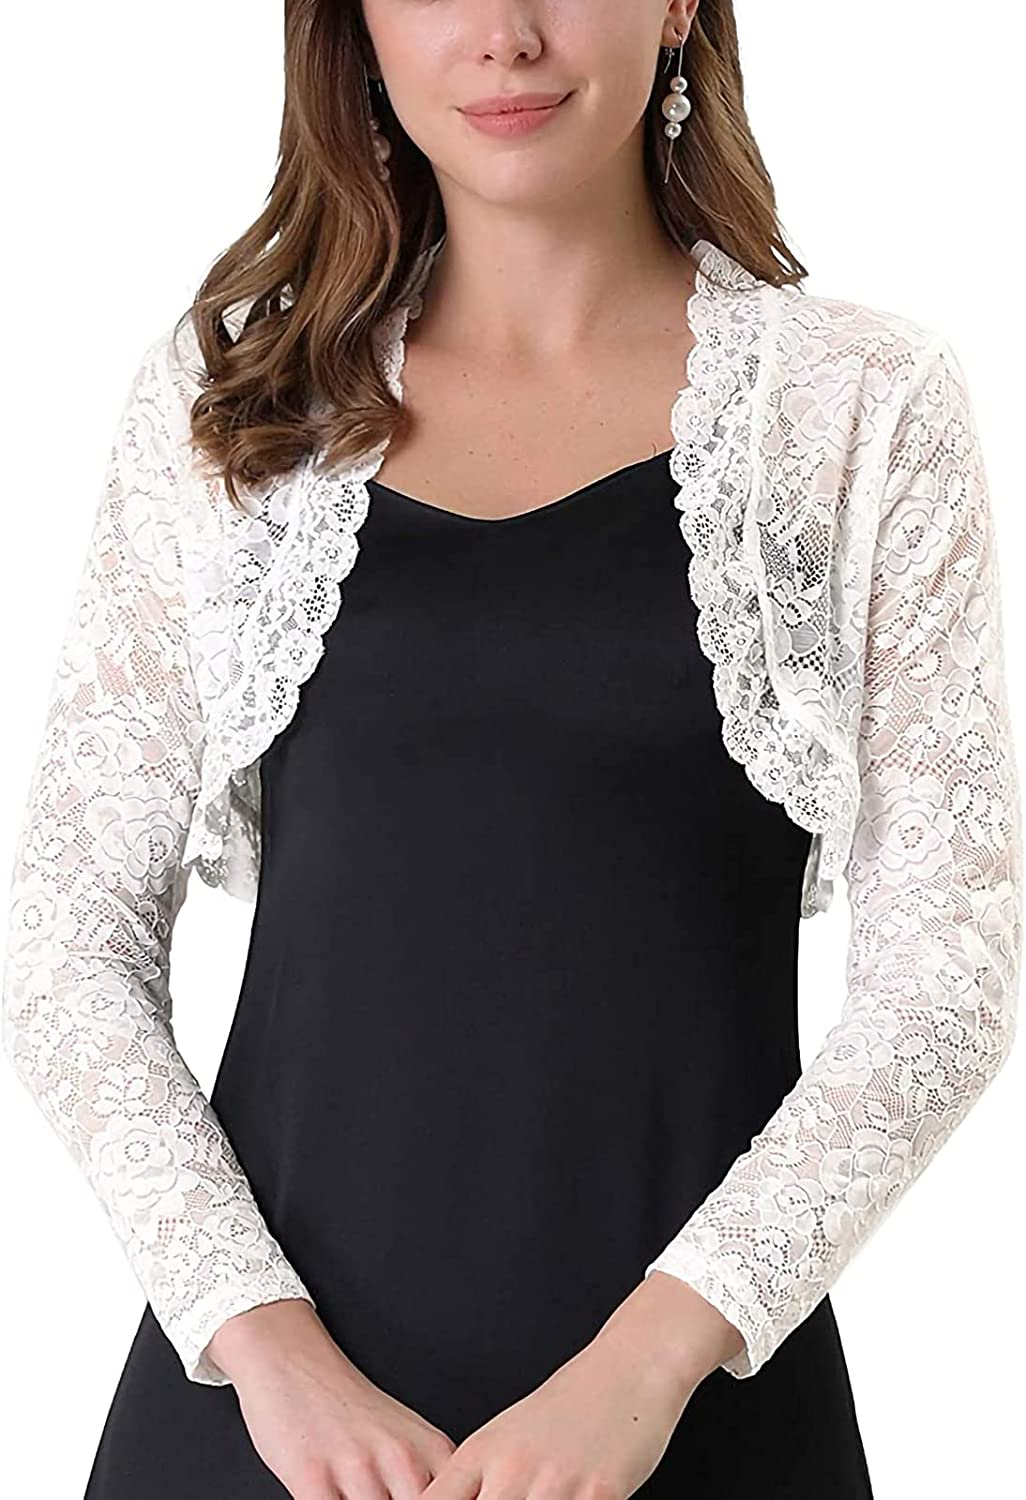 Women Floral Lace Cropped Shrug Bolero Cardigan Long Sleeve Open Front Sheer Cover Up Jacket Capes